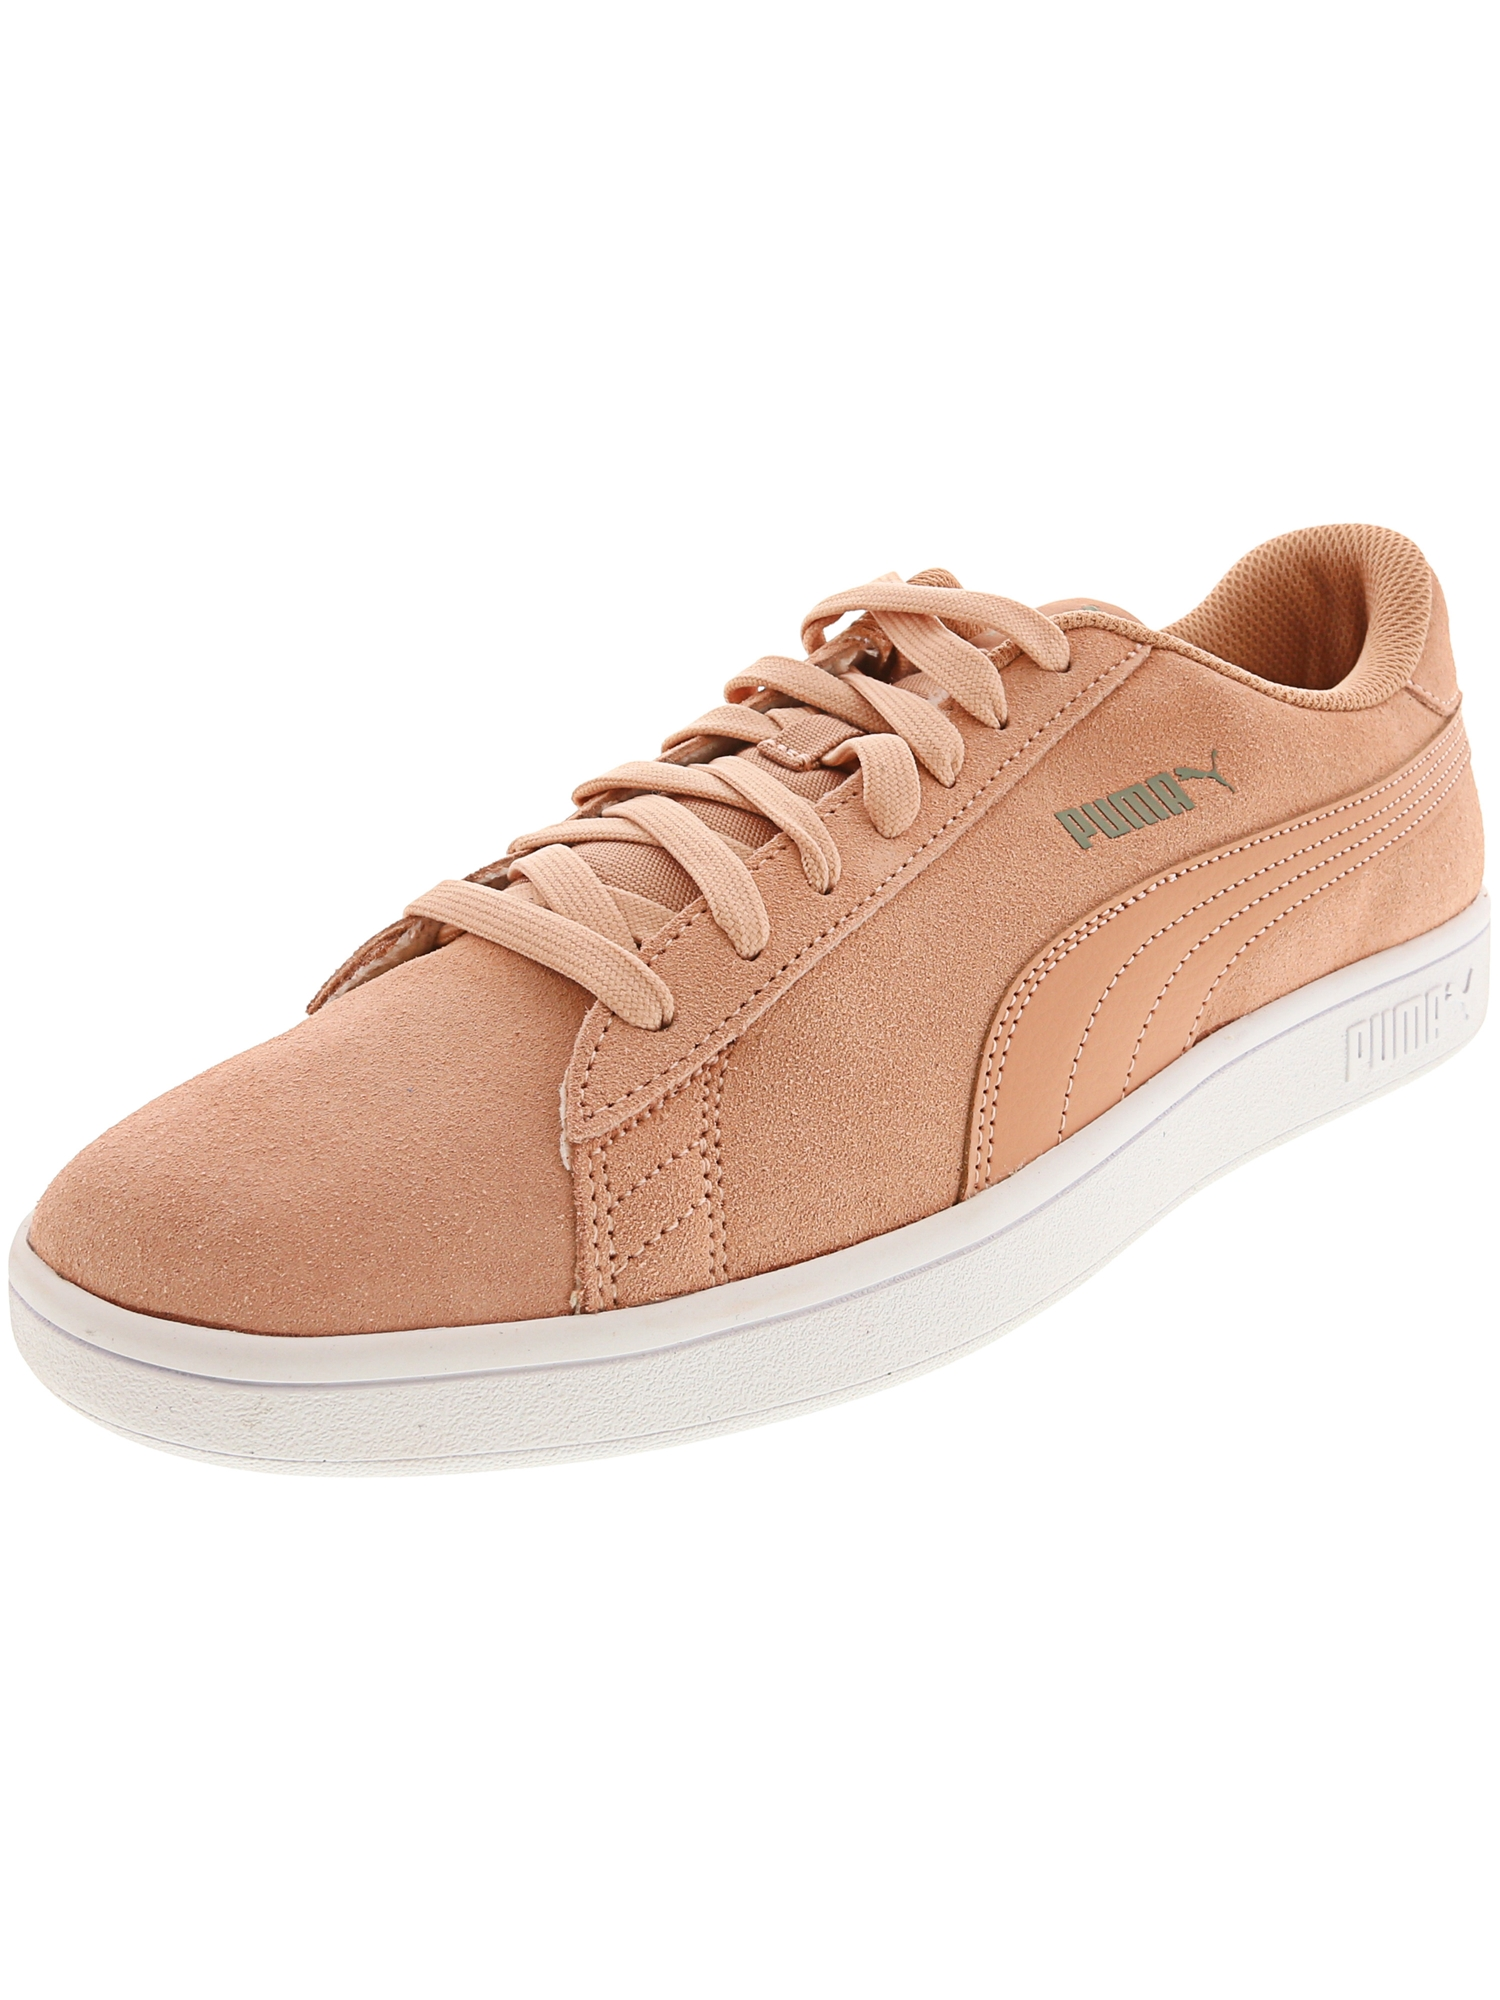 Puma Men's Smash V2 Muted Clay / Ankle-High Suede Fashion Sneaker - 11M